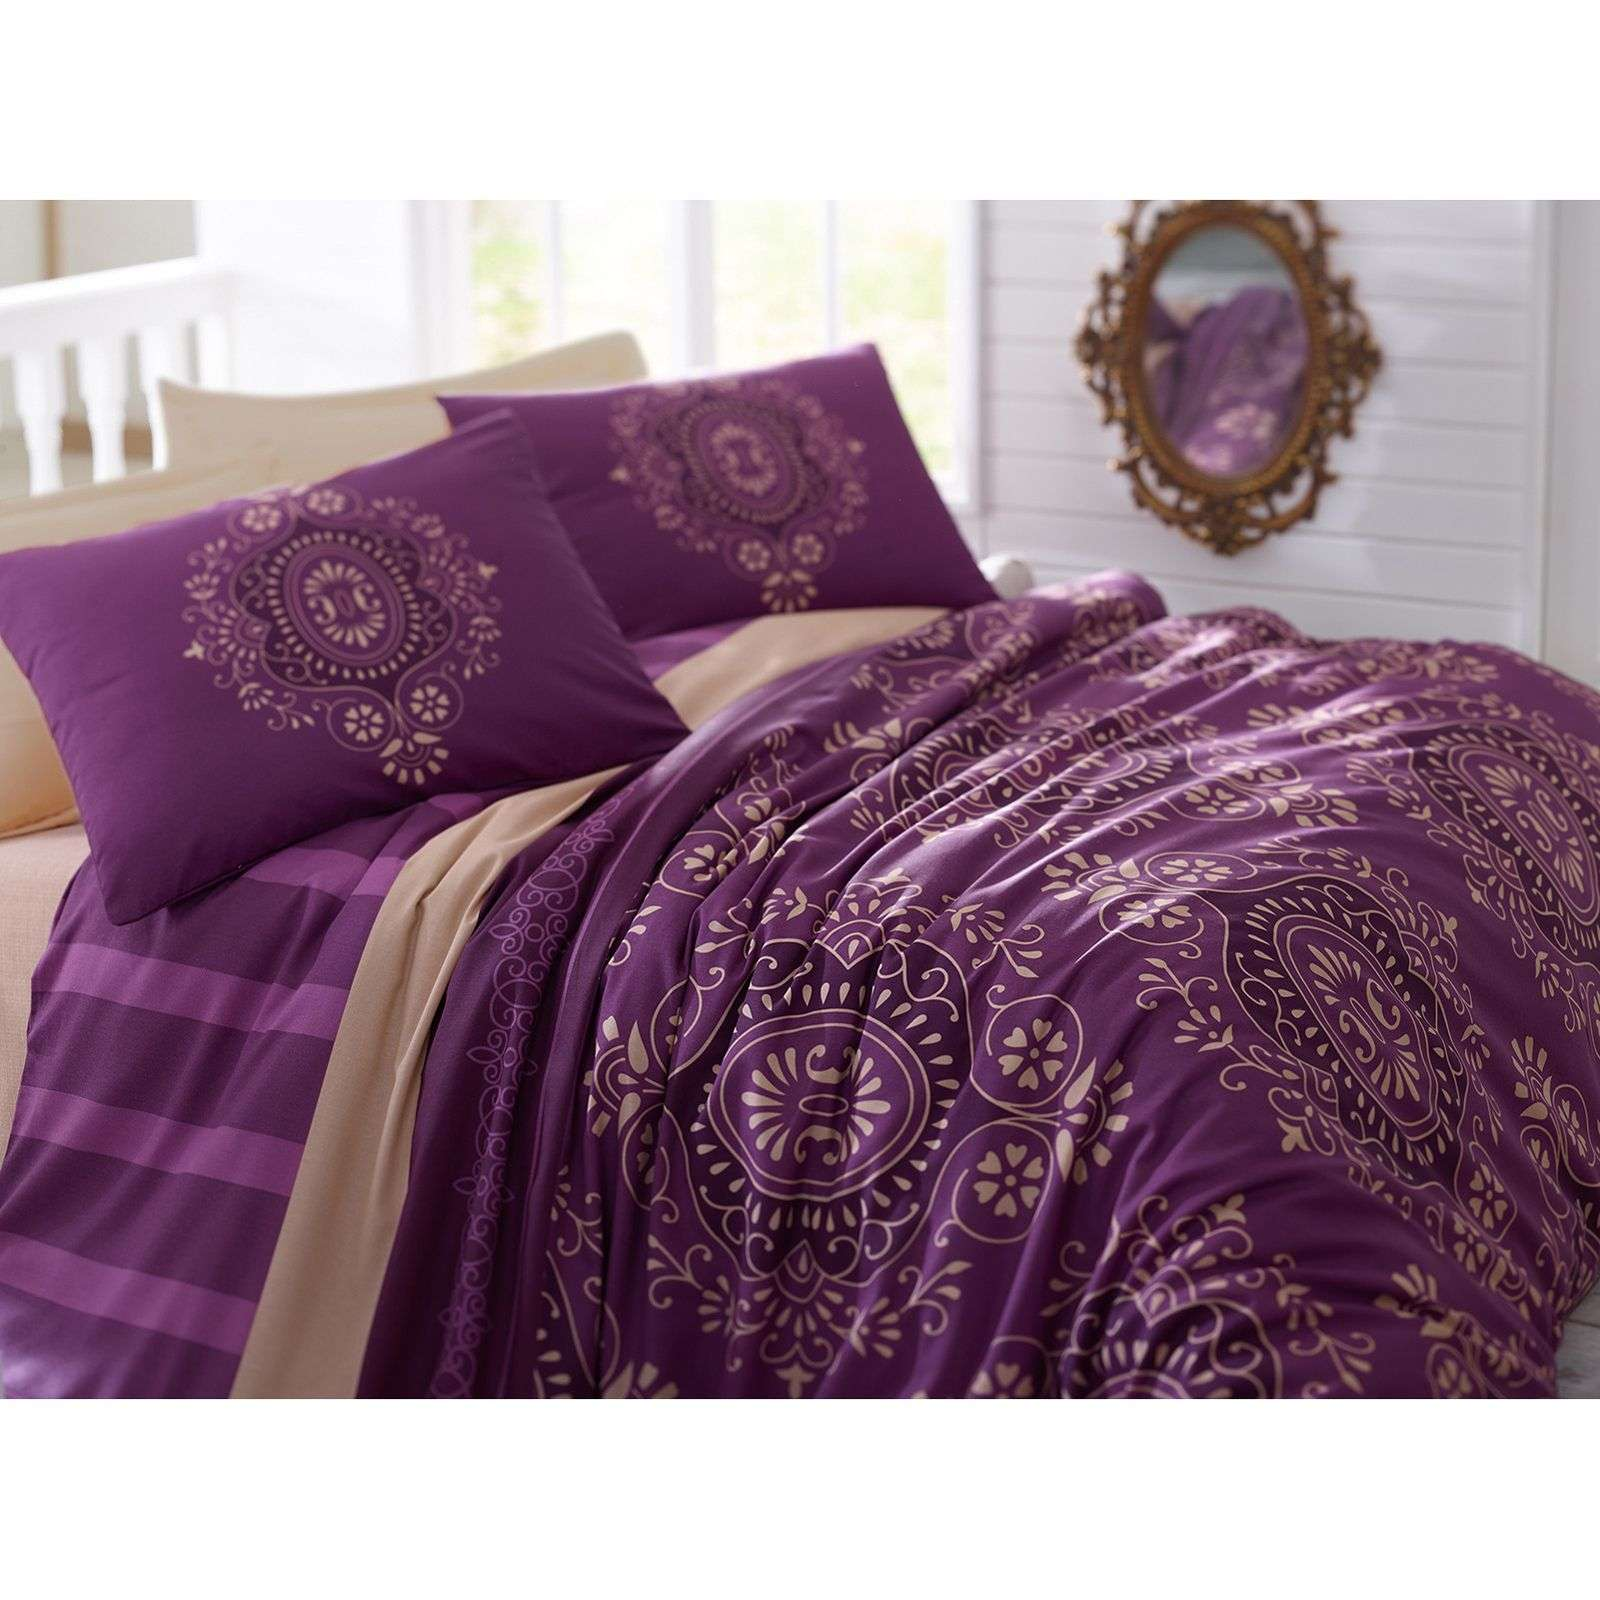 cotton box parure de lit violet brandalley. Black Bedroom Furniture Sets. Home Design Ideas